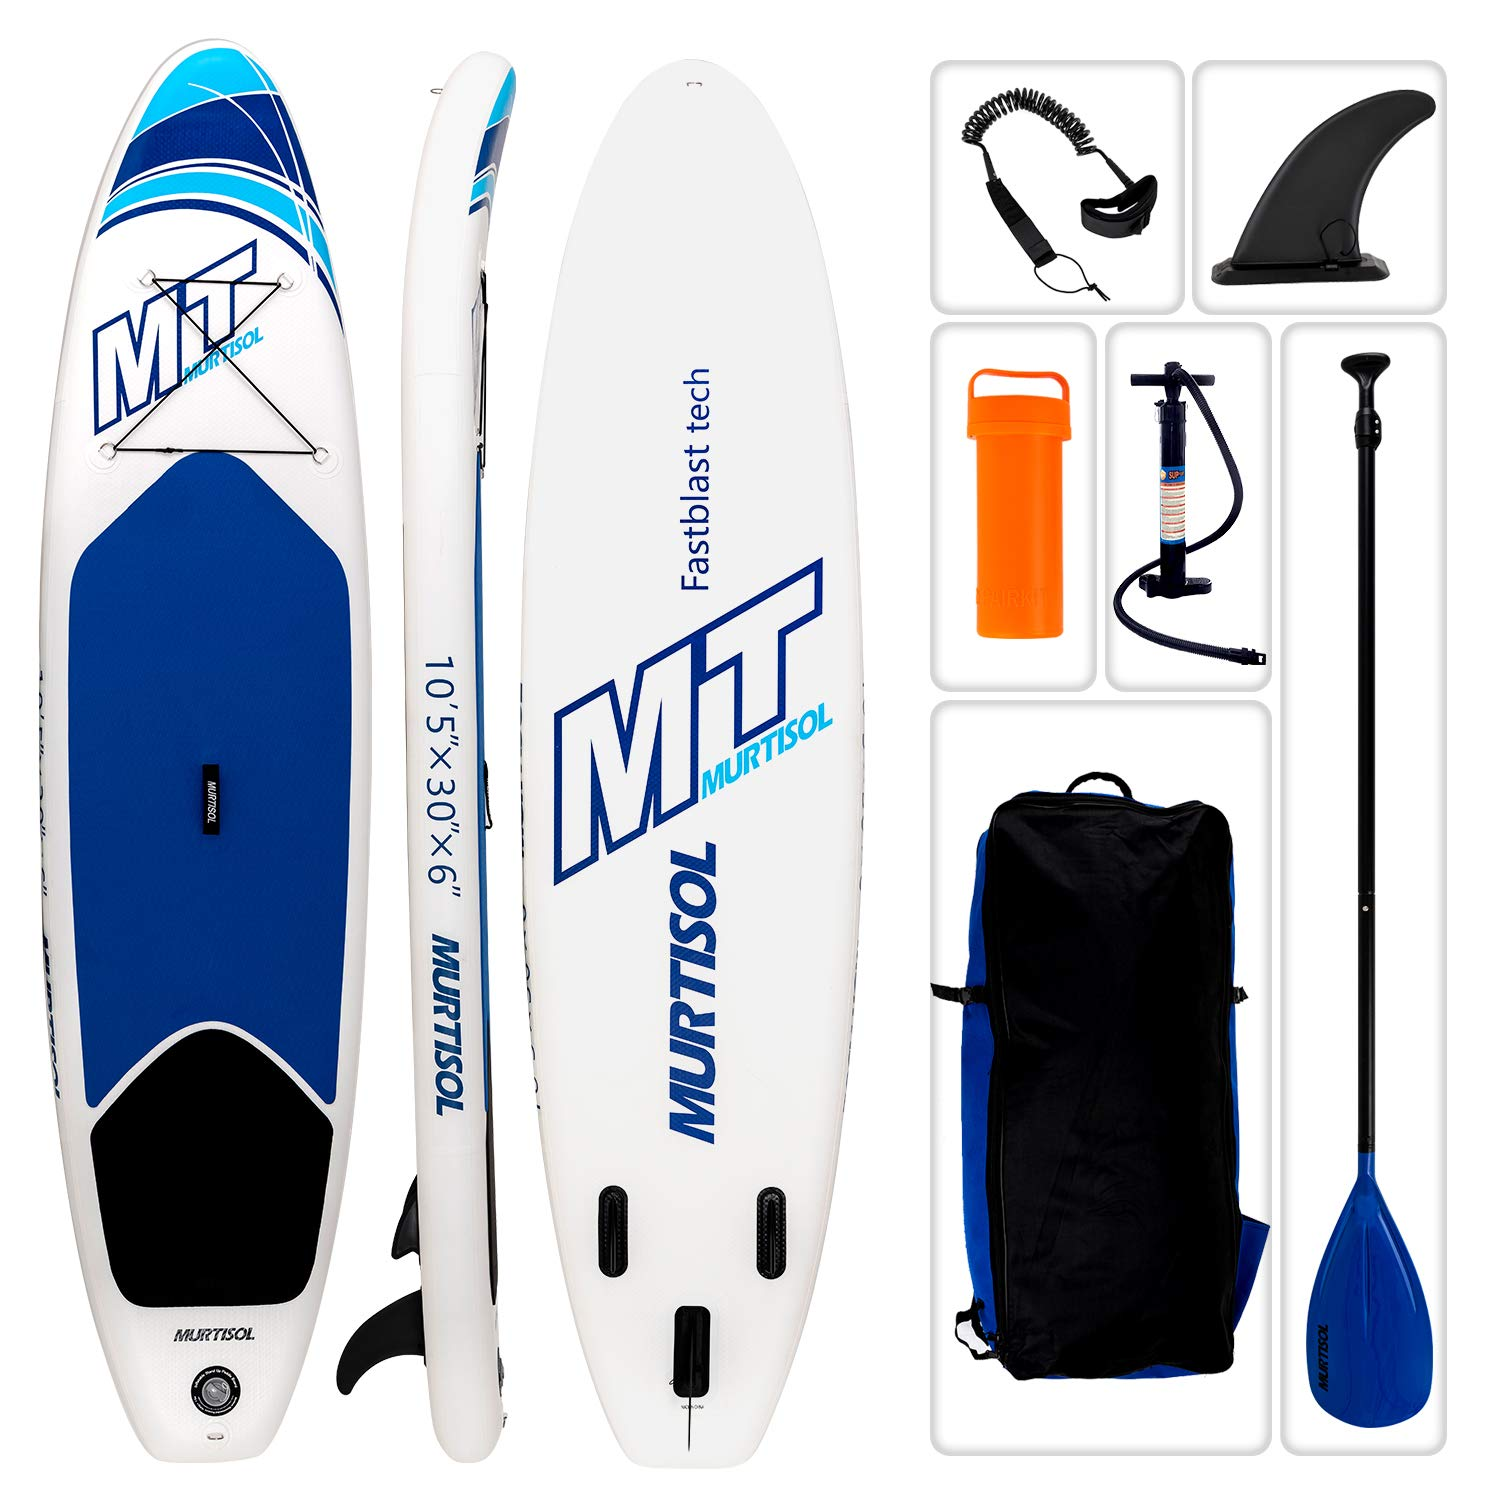 Murtisol 10'5'' Inflatable Stand Up Paddle Board(30in Width), Ultra-Thick Durable PVC, Non-Slip Deck, Premium SUP Accessories, Dual-Action Pump, Safety Ankle Strap, Adjustable Paddle, Blue by Murtisol